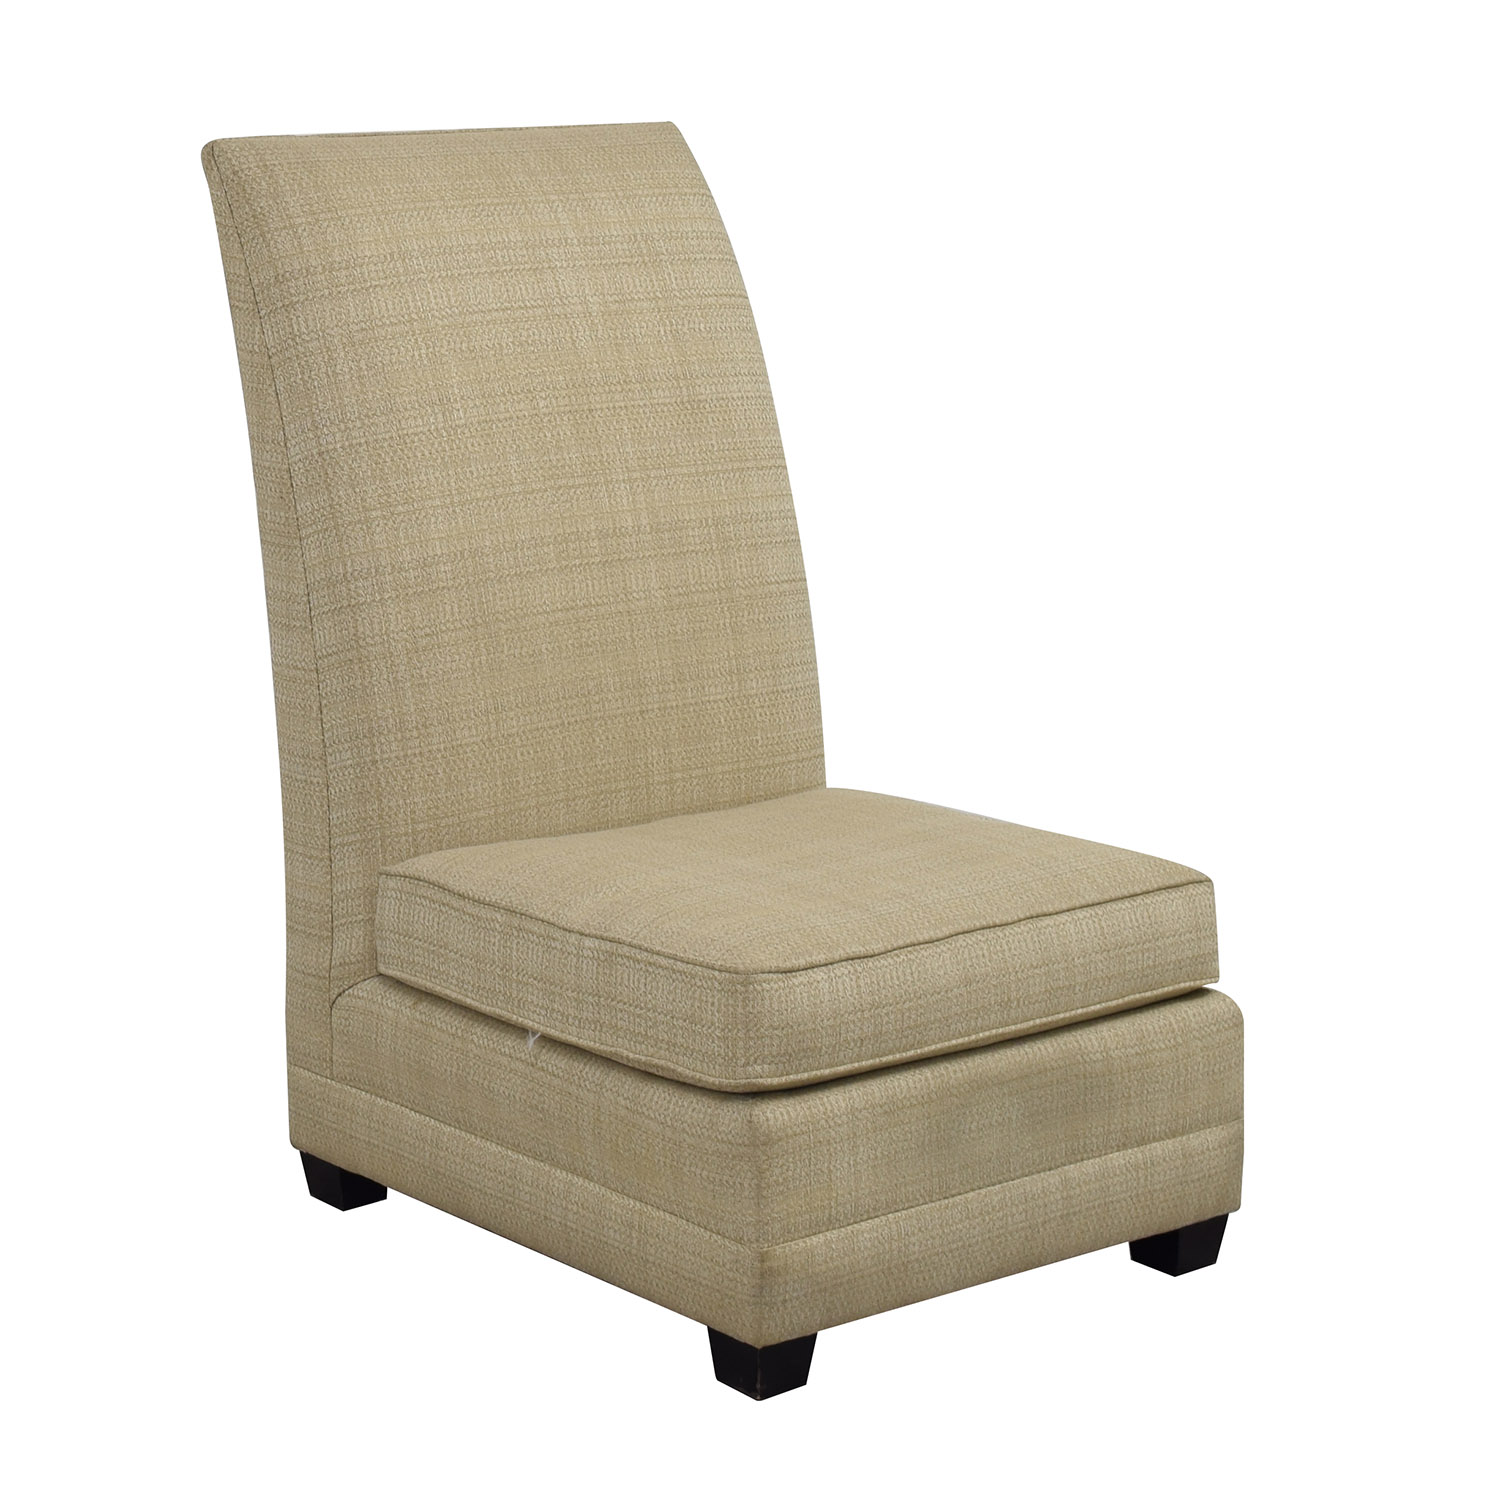 buy Bernhardt Bernhardt Beaumont Cream Accent Chair online